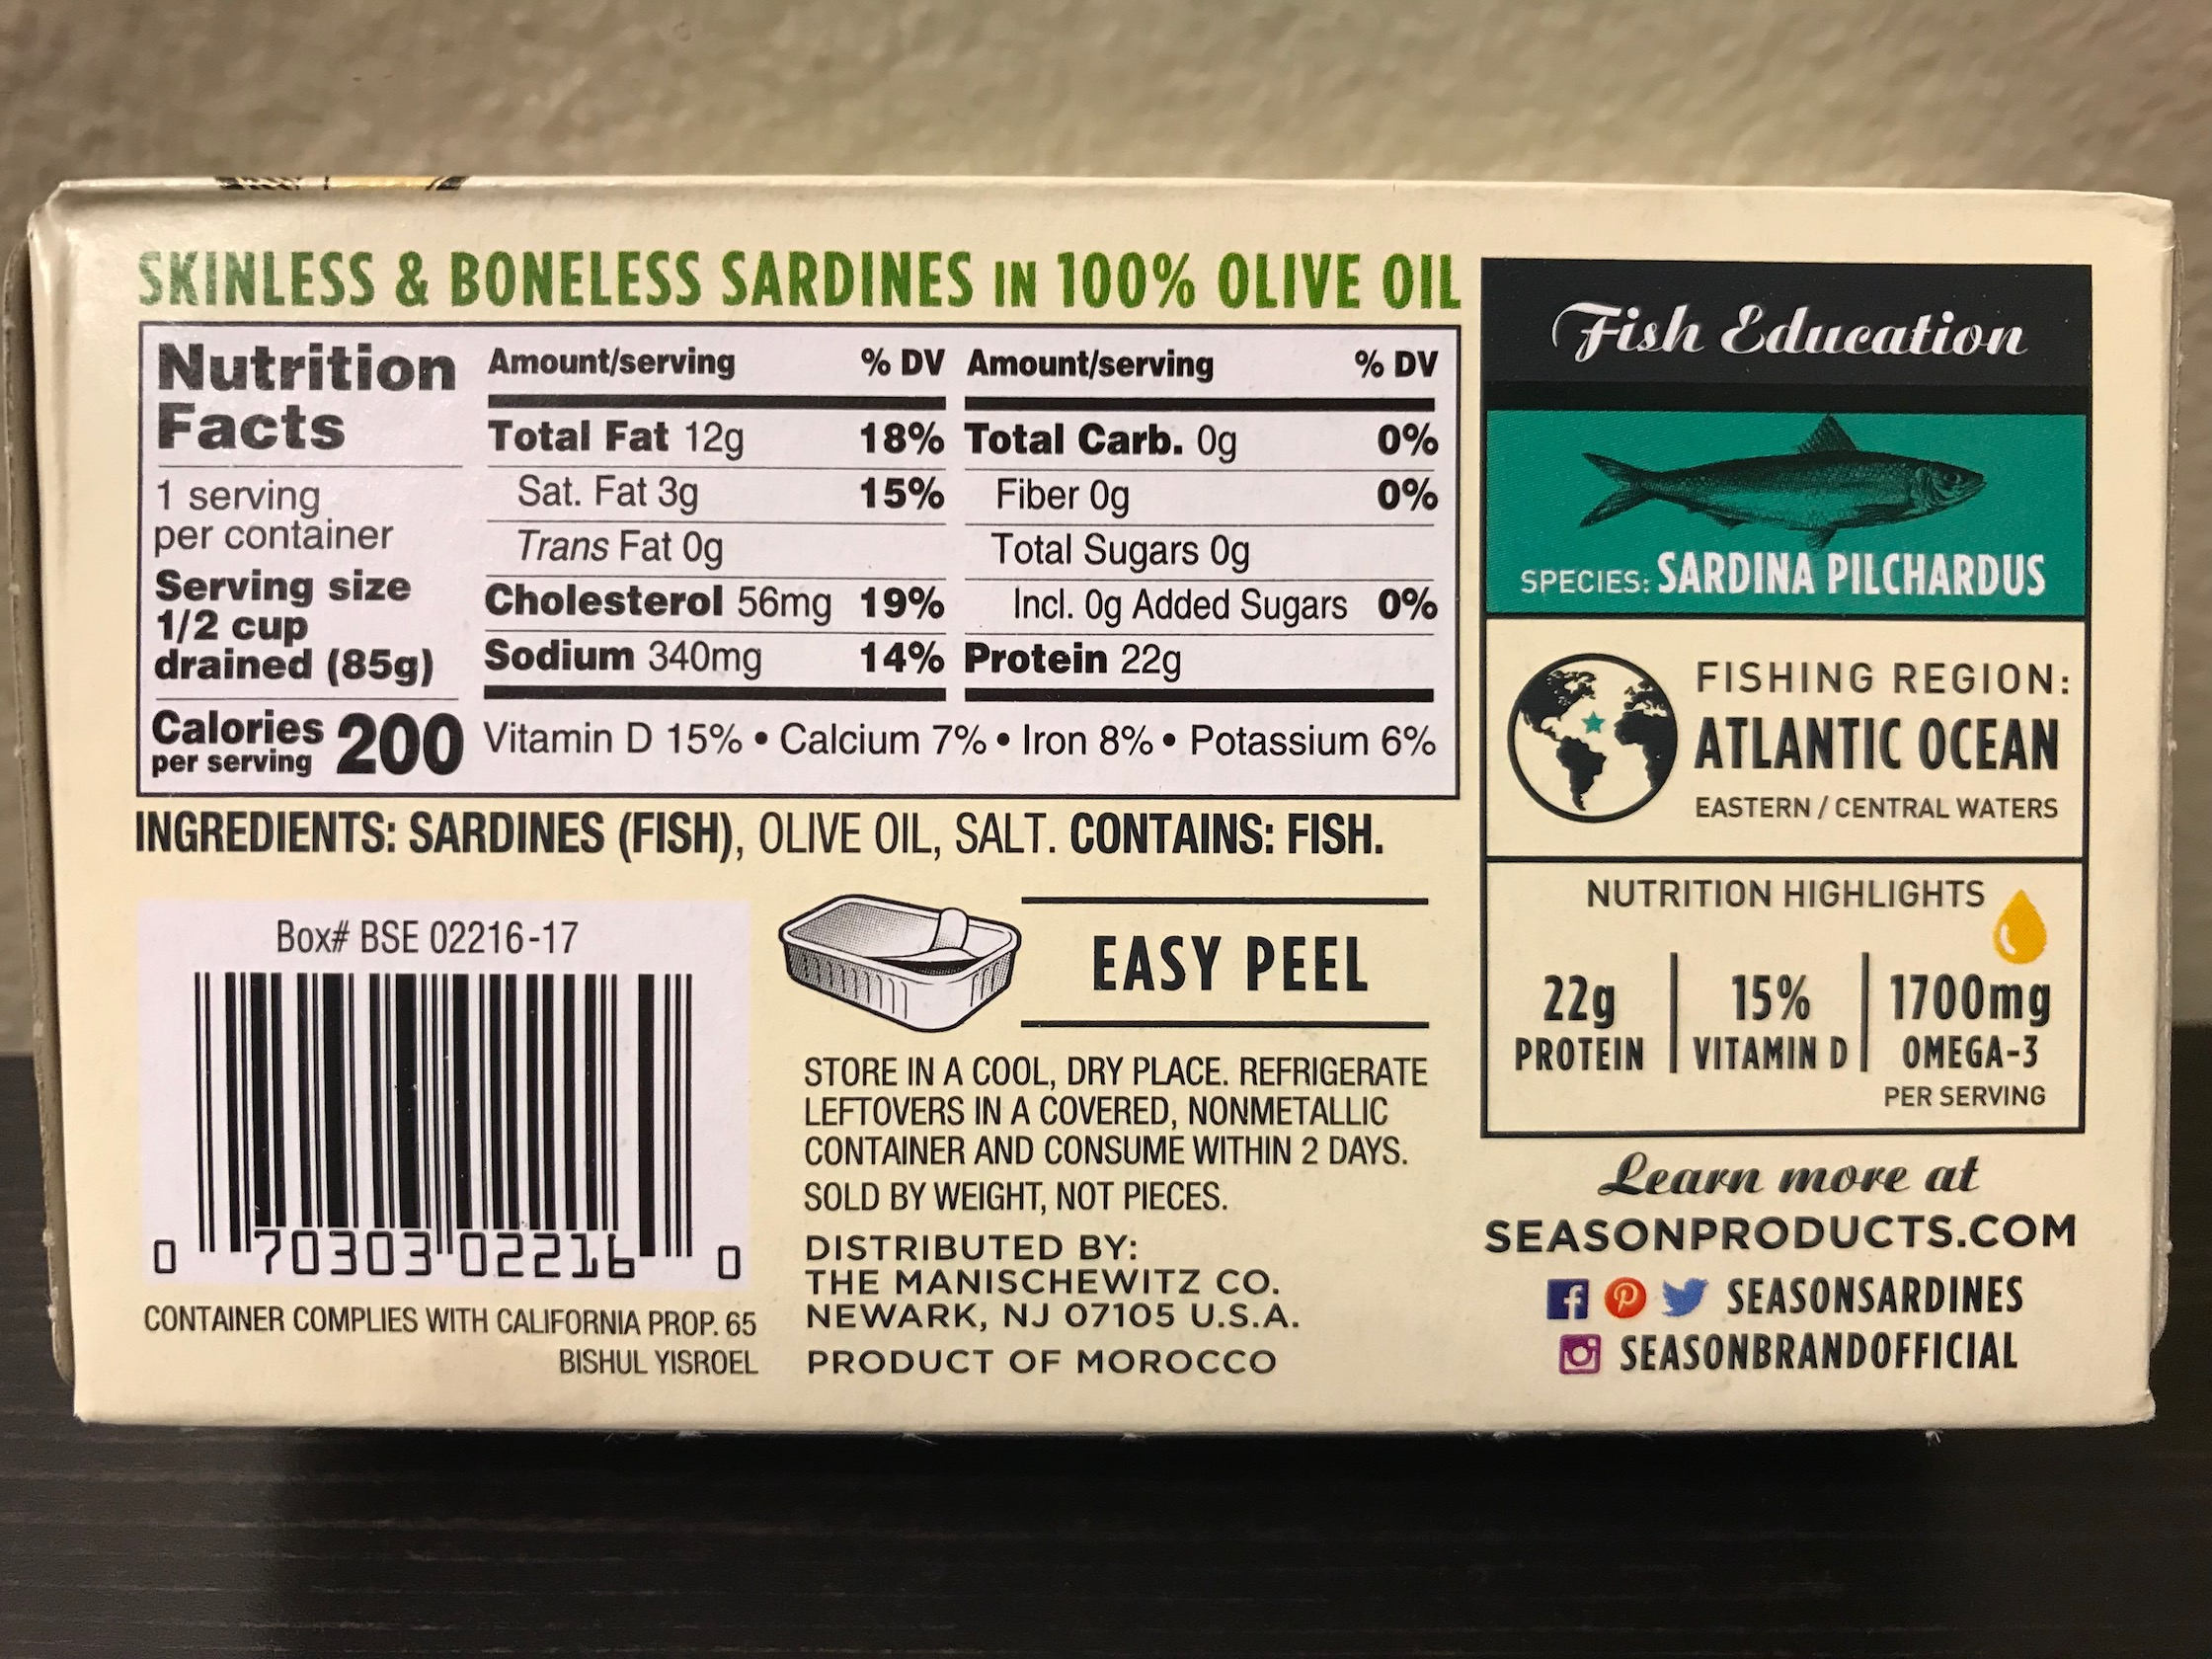 Season Wild Caught Sardines in Olive Oil Nutrition Facts